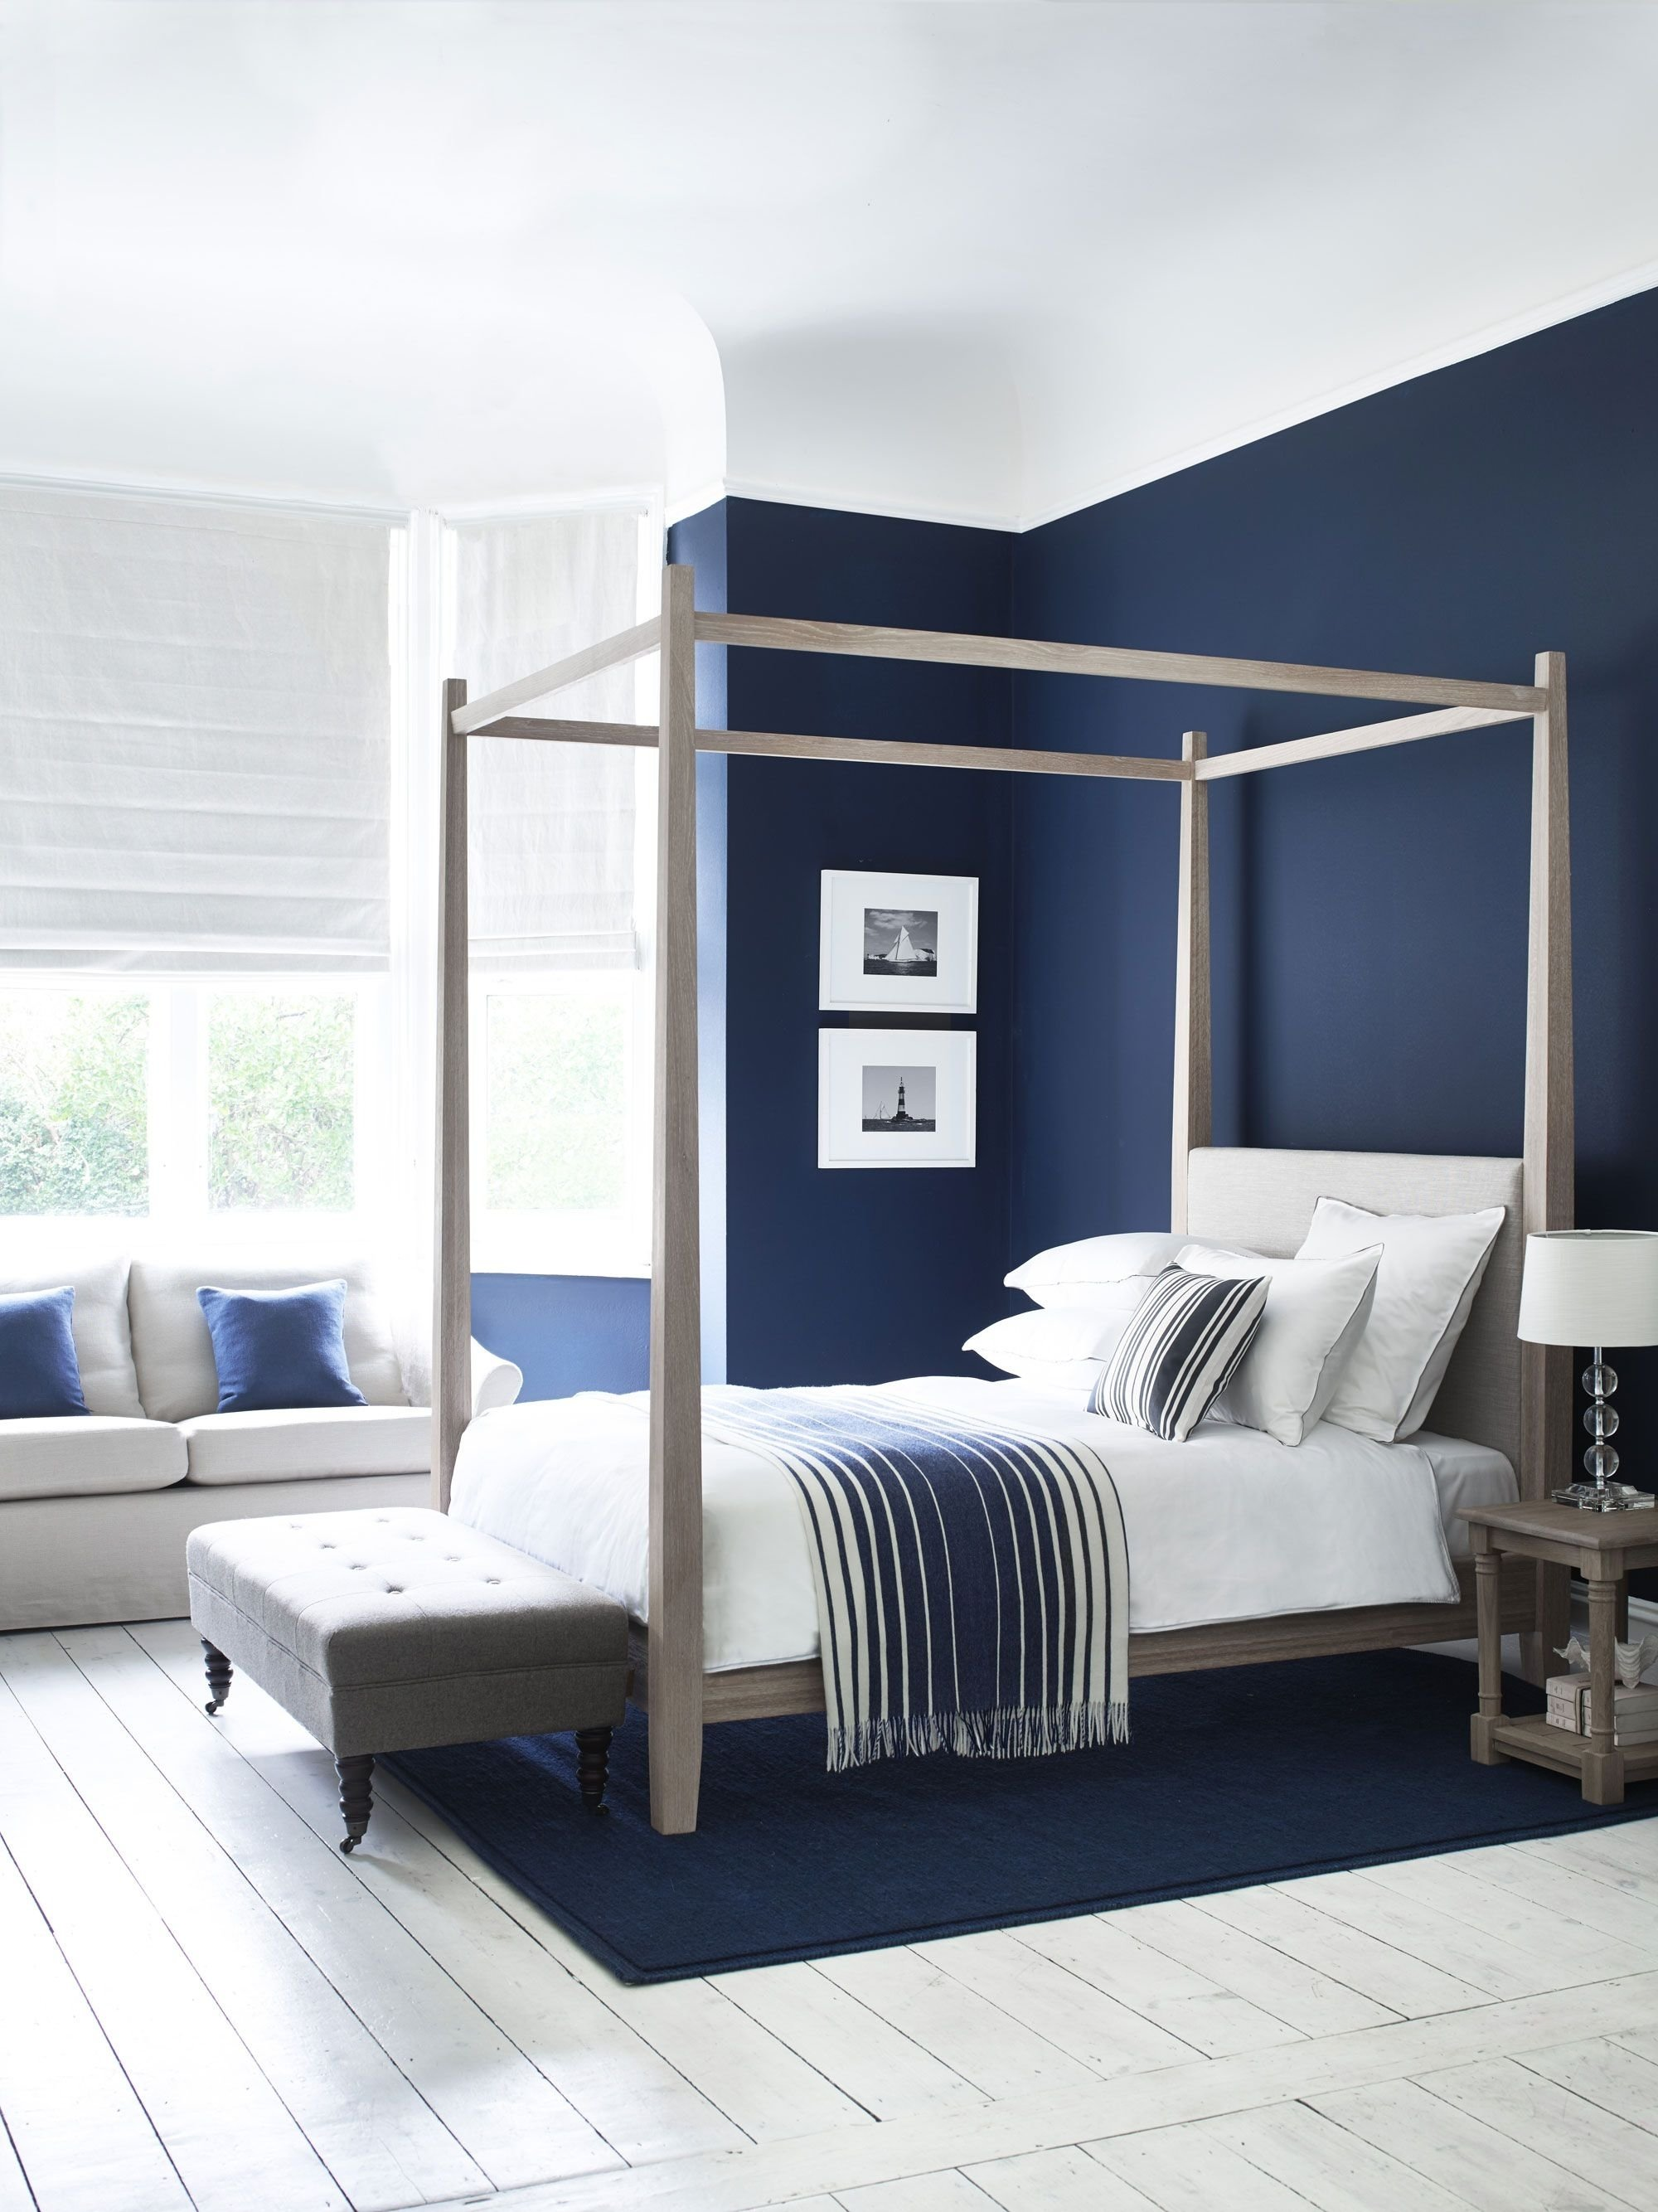 10 Stylish Blue And White Bedroom Ideas wardley four poster bed in oak simple and elegant shakerstyle 2020